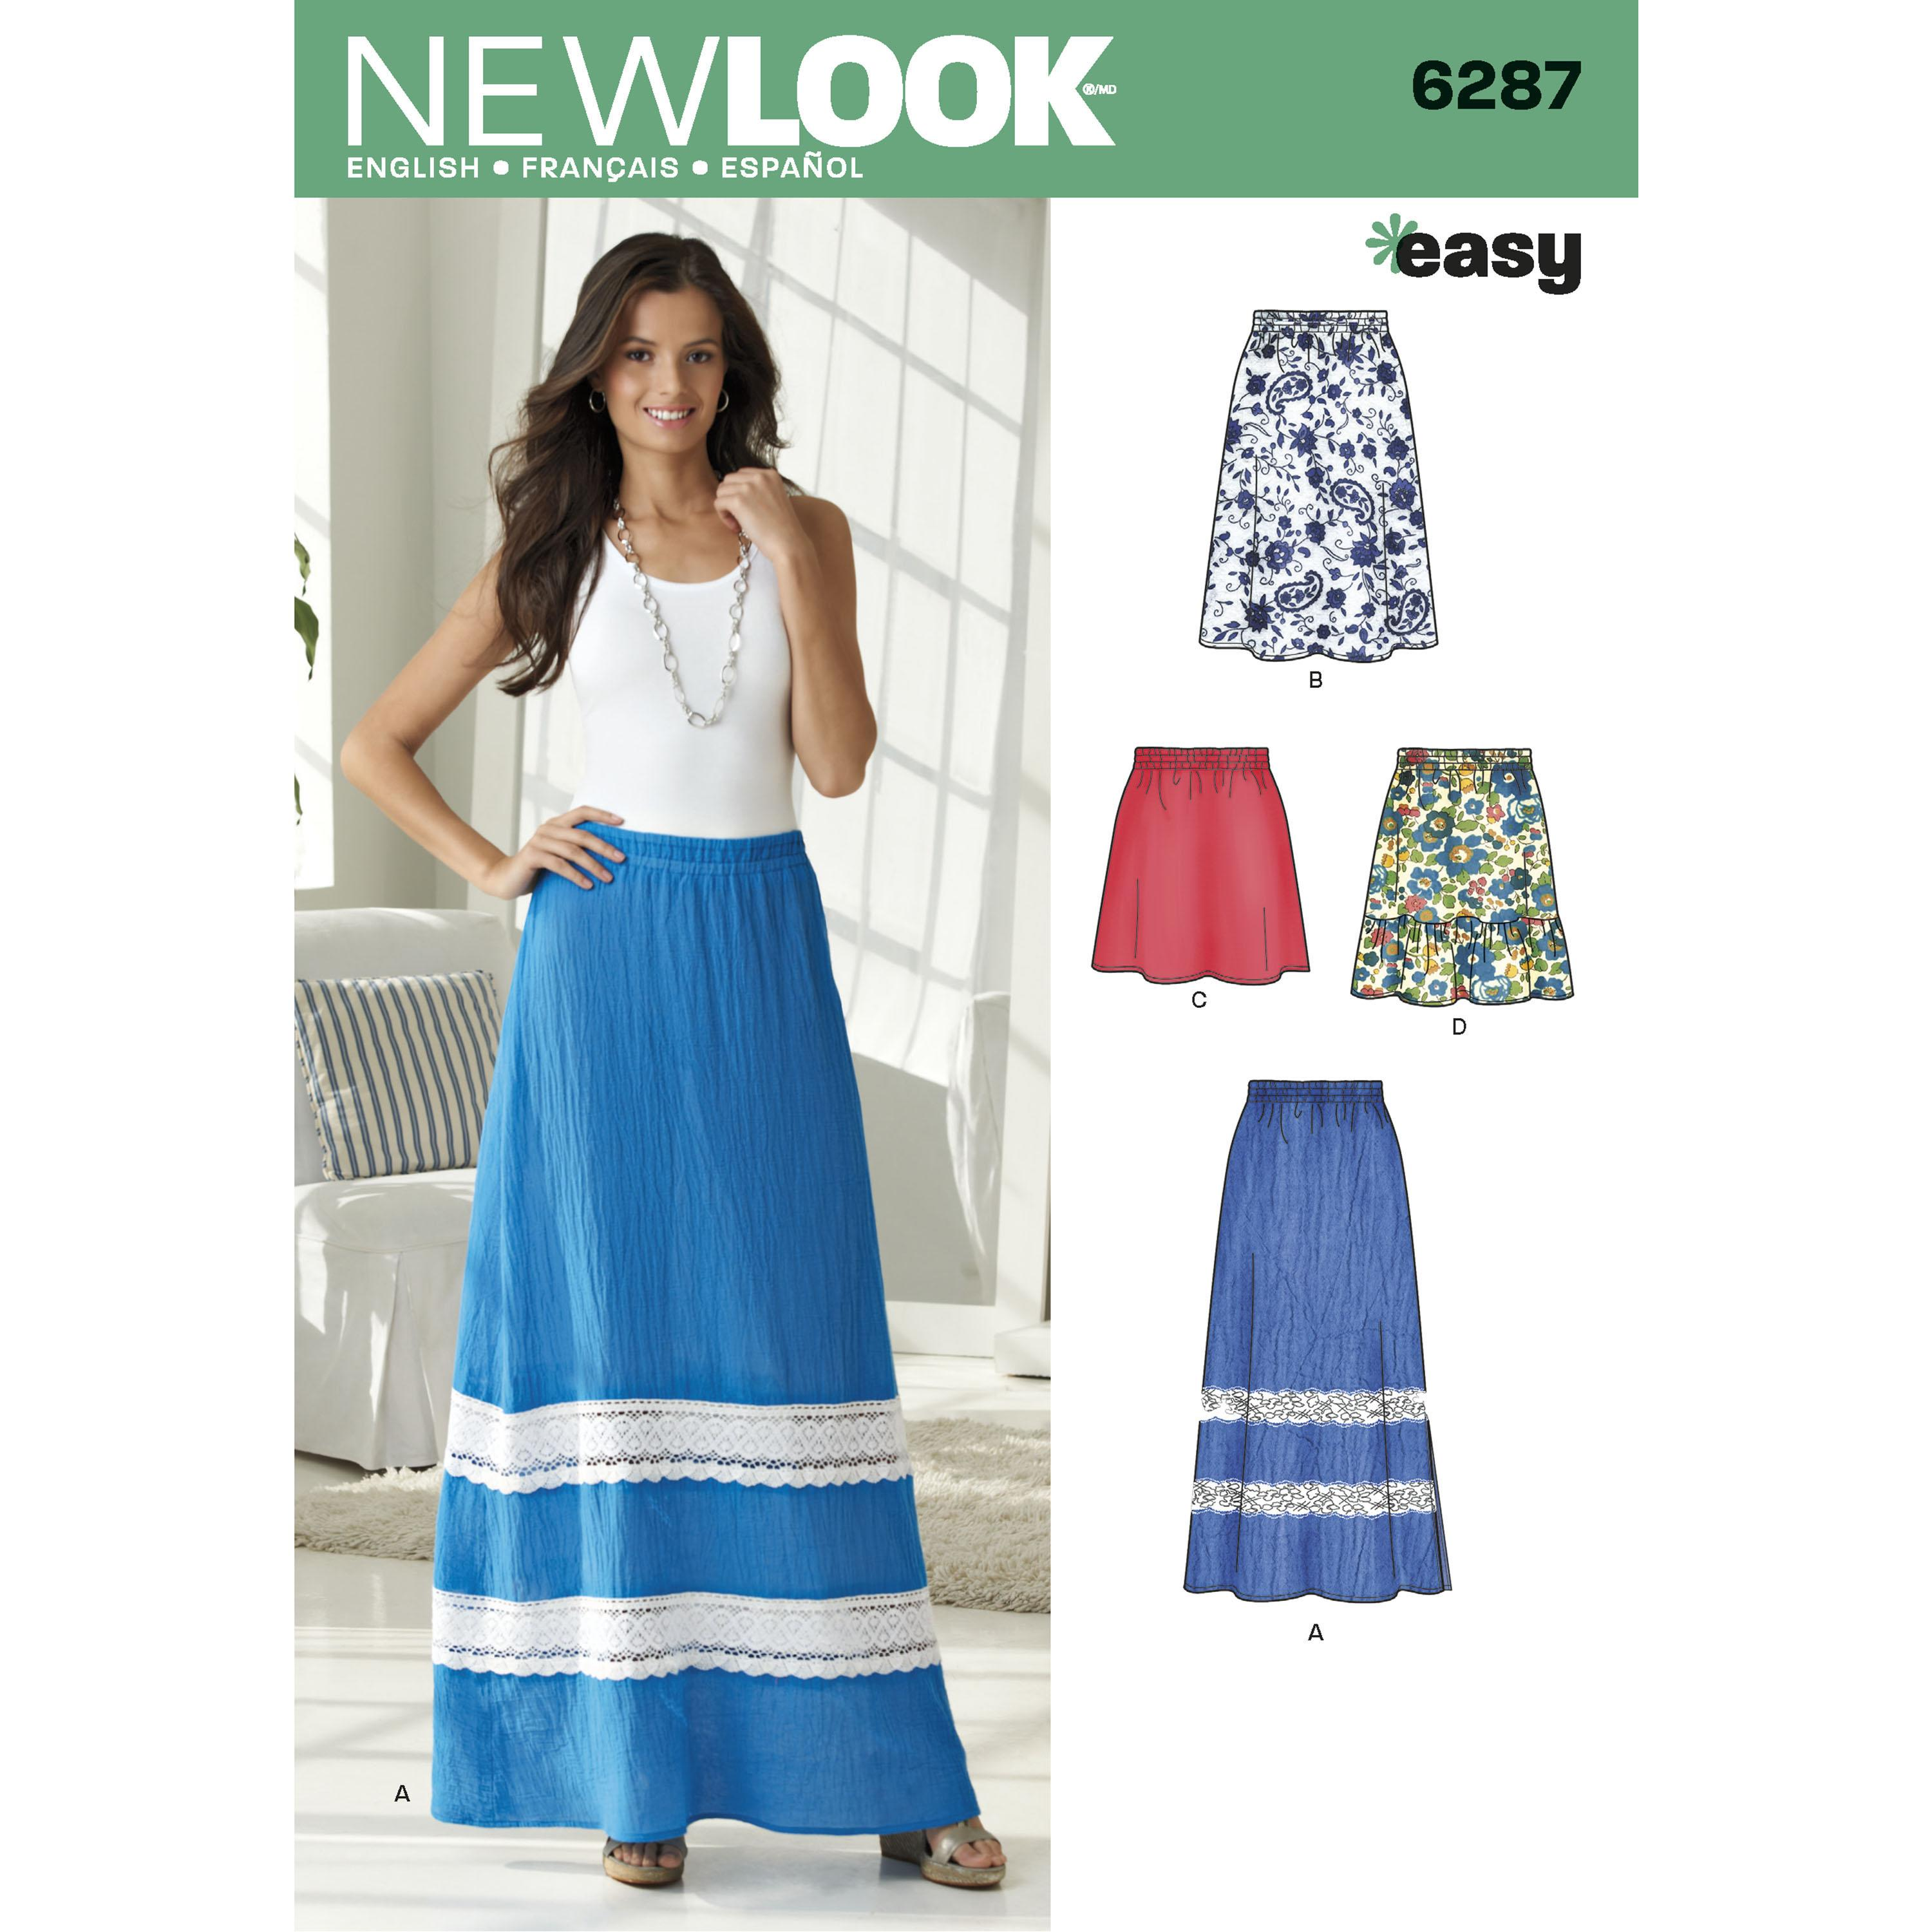 NewLook N6287 Misses' Pull on Skirt in Four Lengths